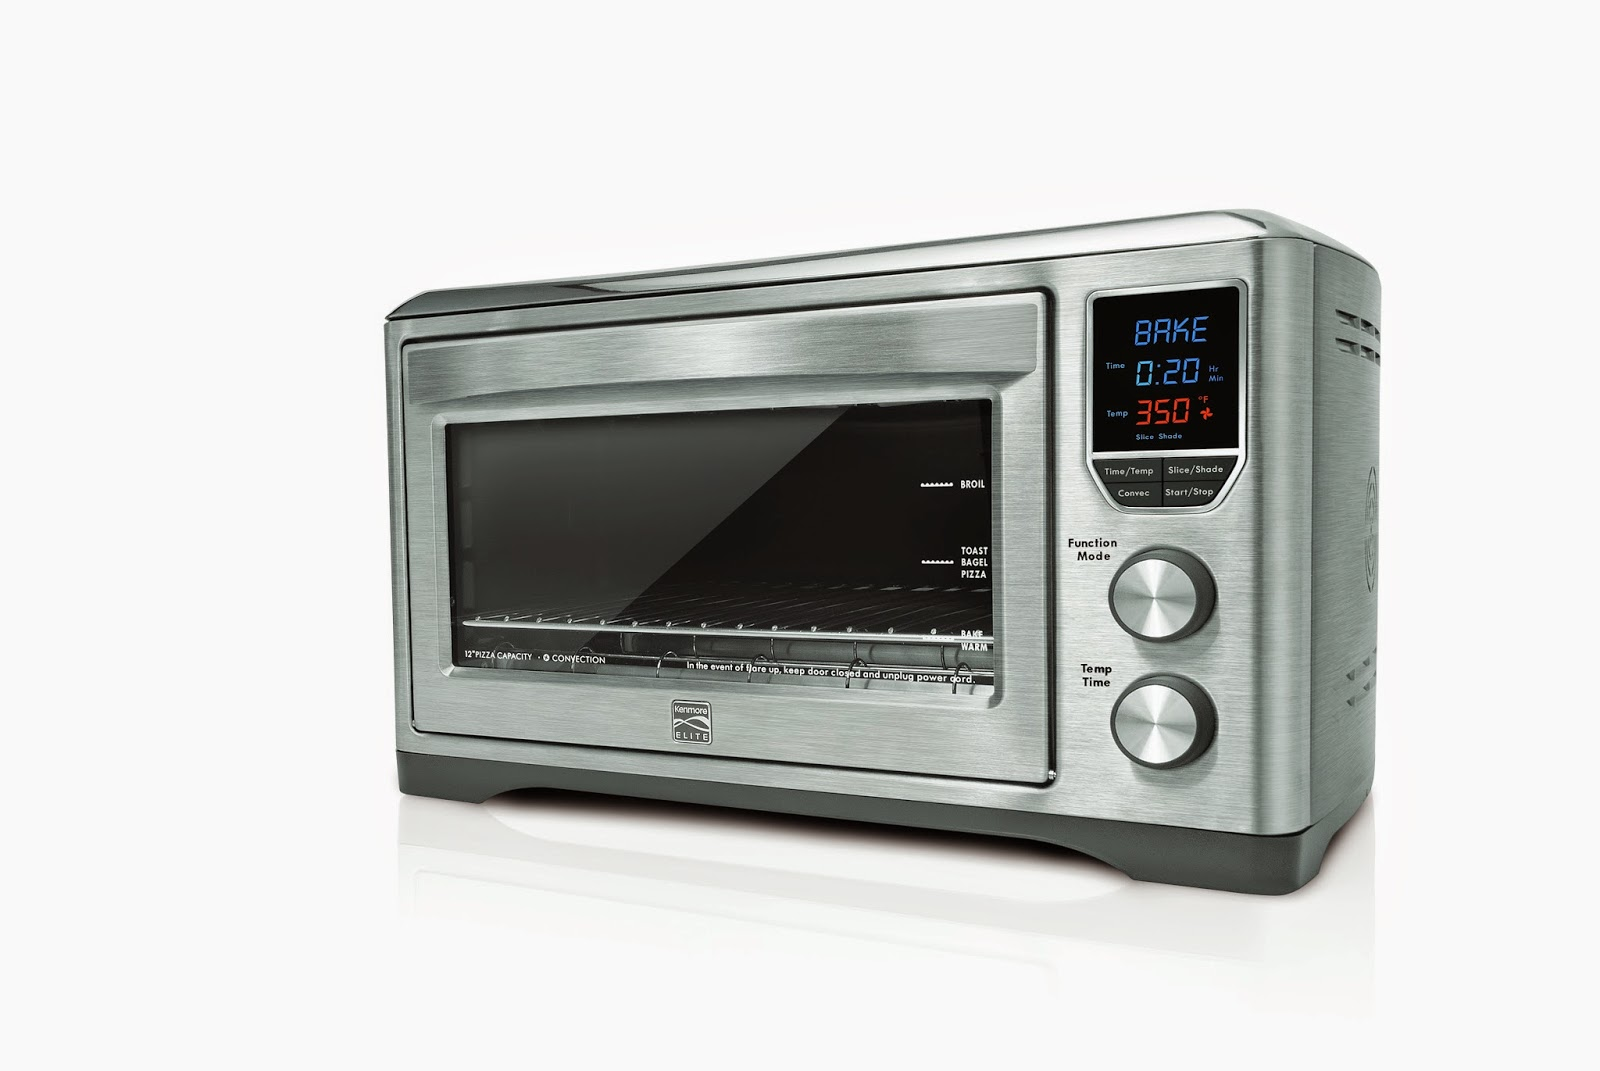 Kenmore Countertop Oven : receiving a countertop convection oven from Kenmore to review. Kenmore ...